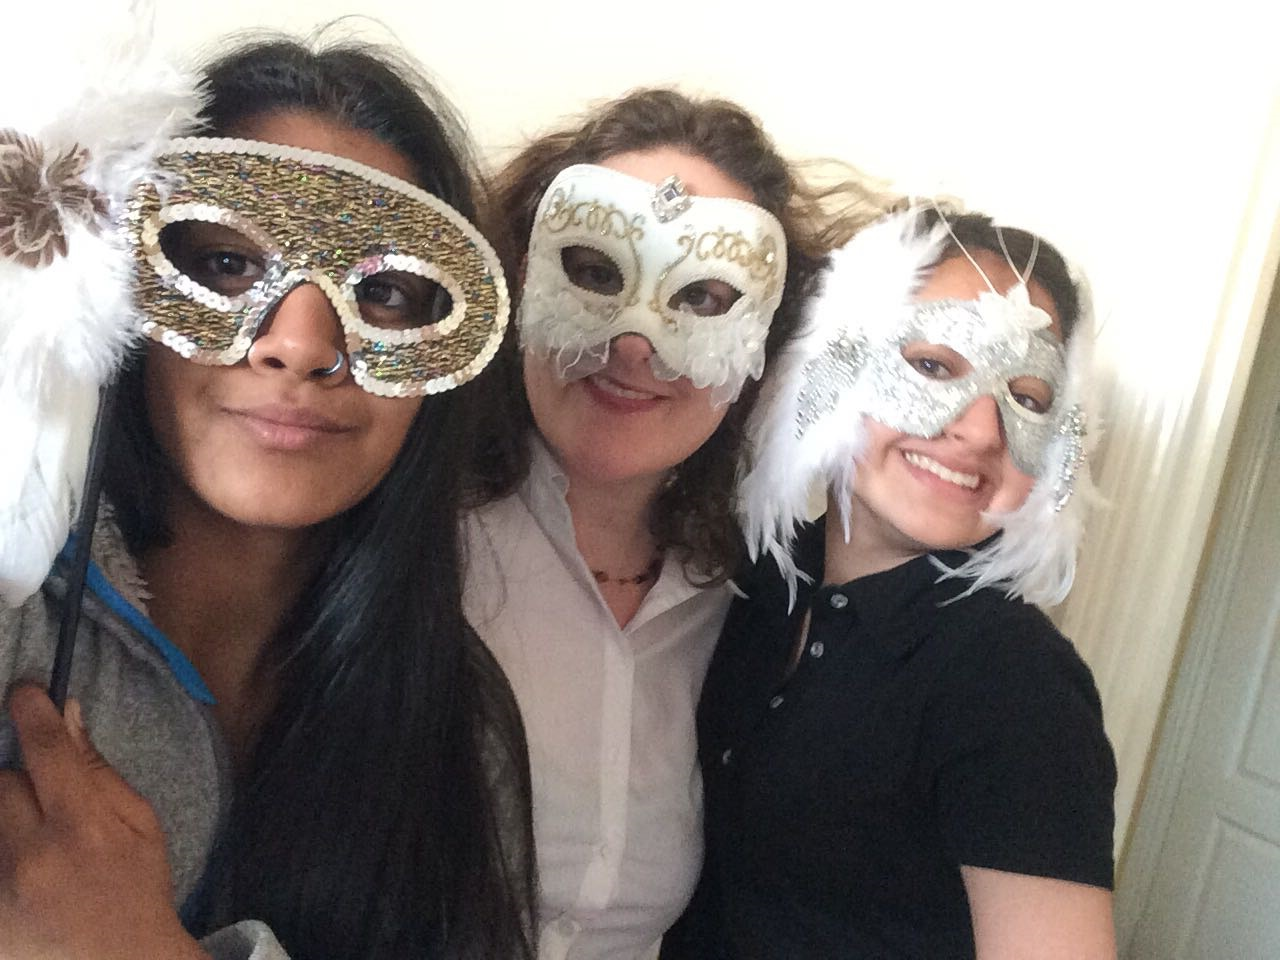 Girls in Masks